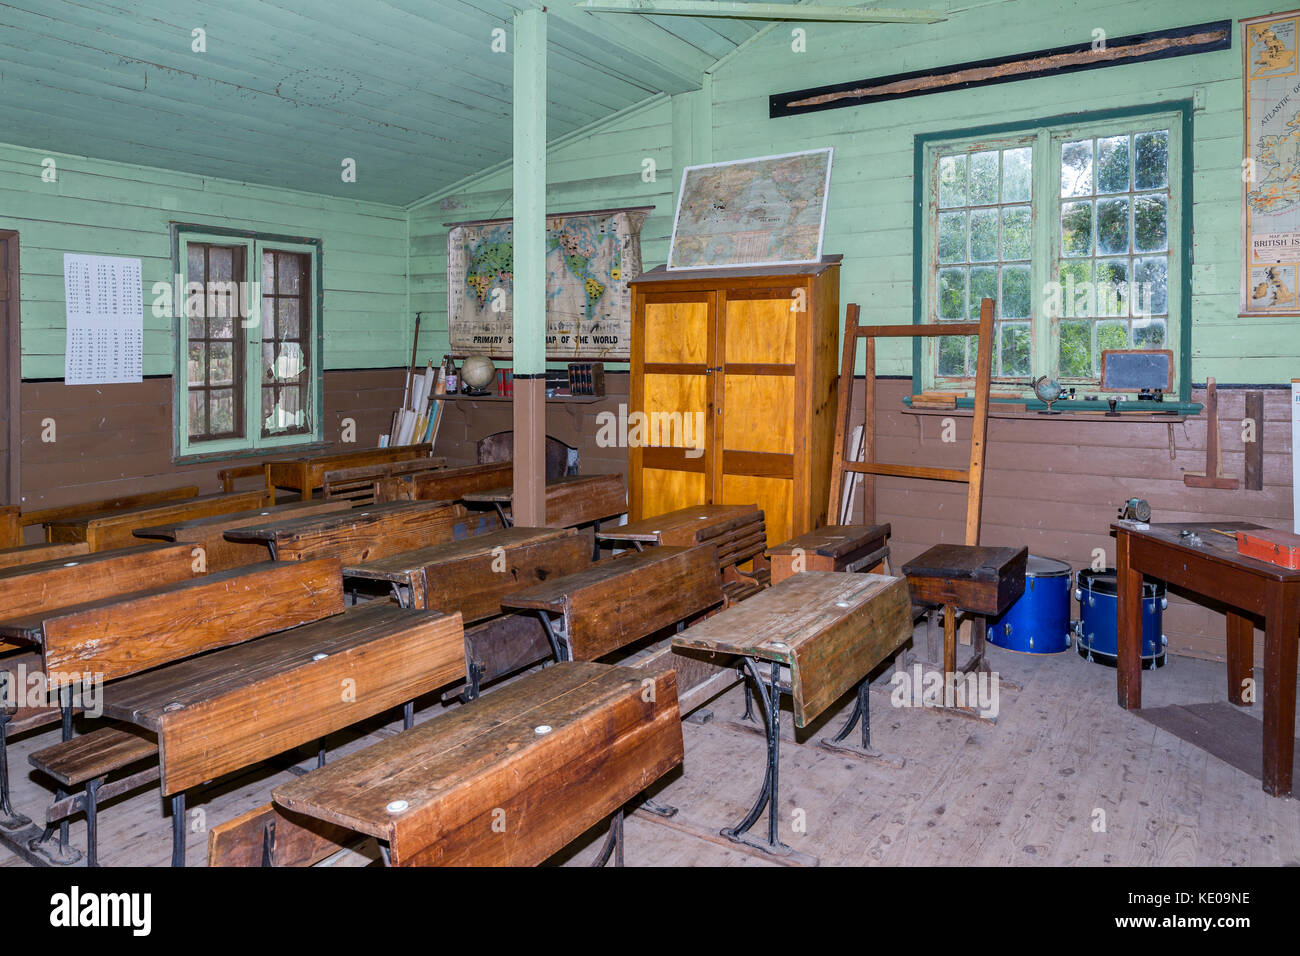 Inside old classroom from the outback, Old Tailem Bend Pioneer Village, South Australia, Australia - Stock Image